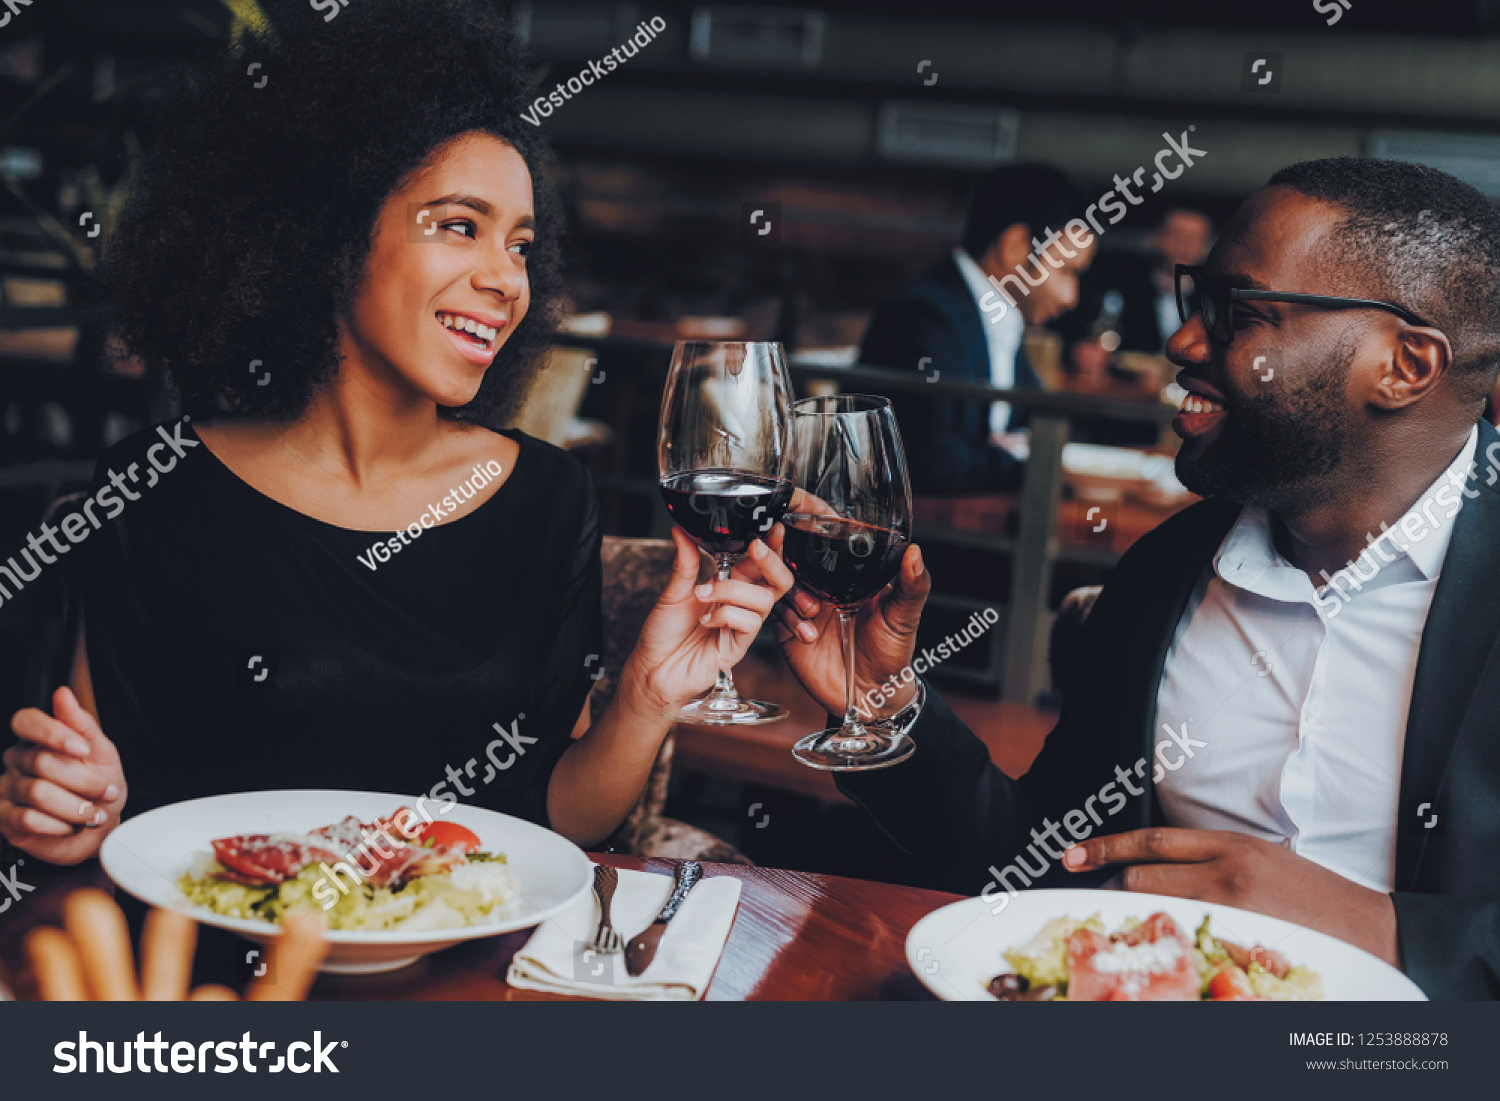 African American Couple Dating in Restaurant. Romantic Couple in Love Dating. Cheerful Man and Woman with Menu in a Restaurant Making Order. Romantic Concept. Cheers Classes Red Wine. #1253888878